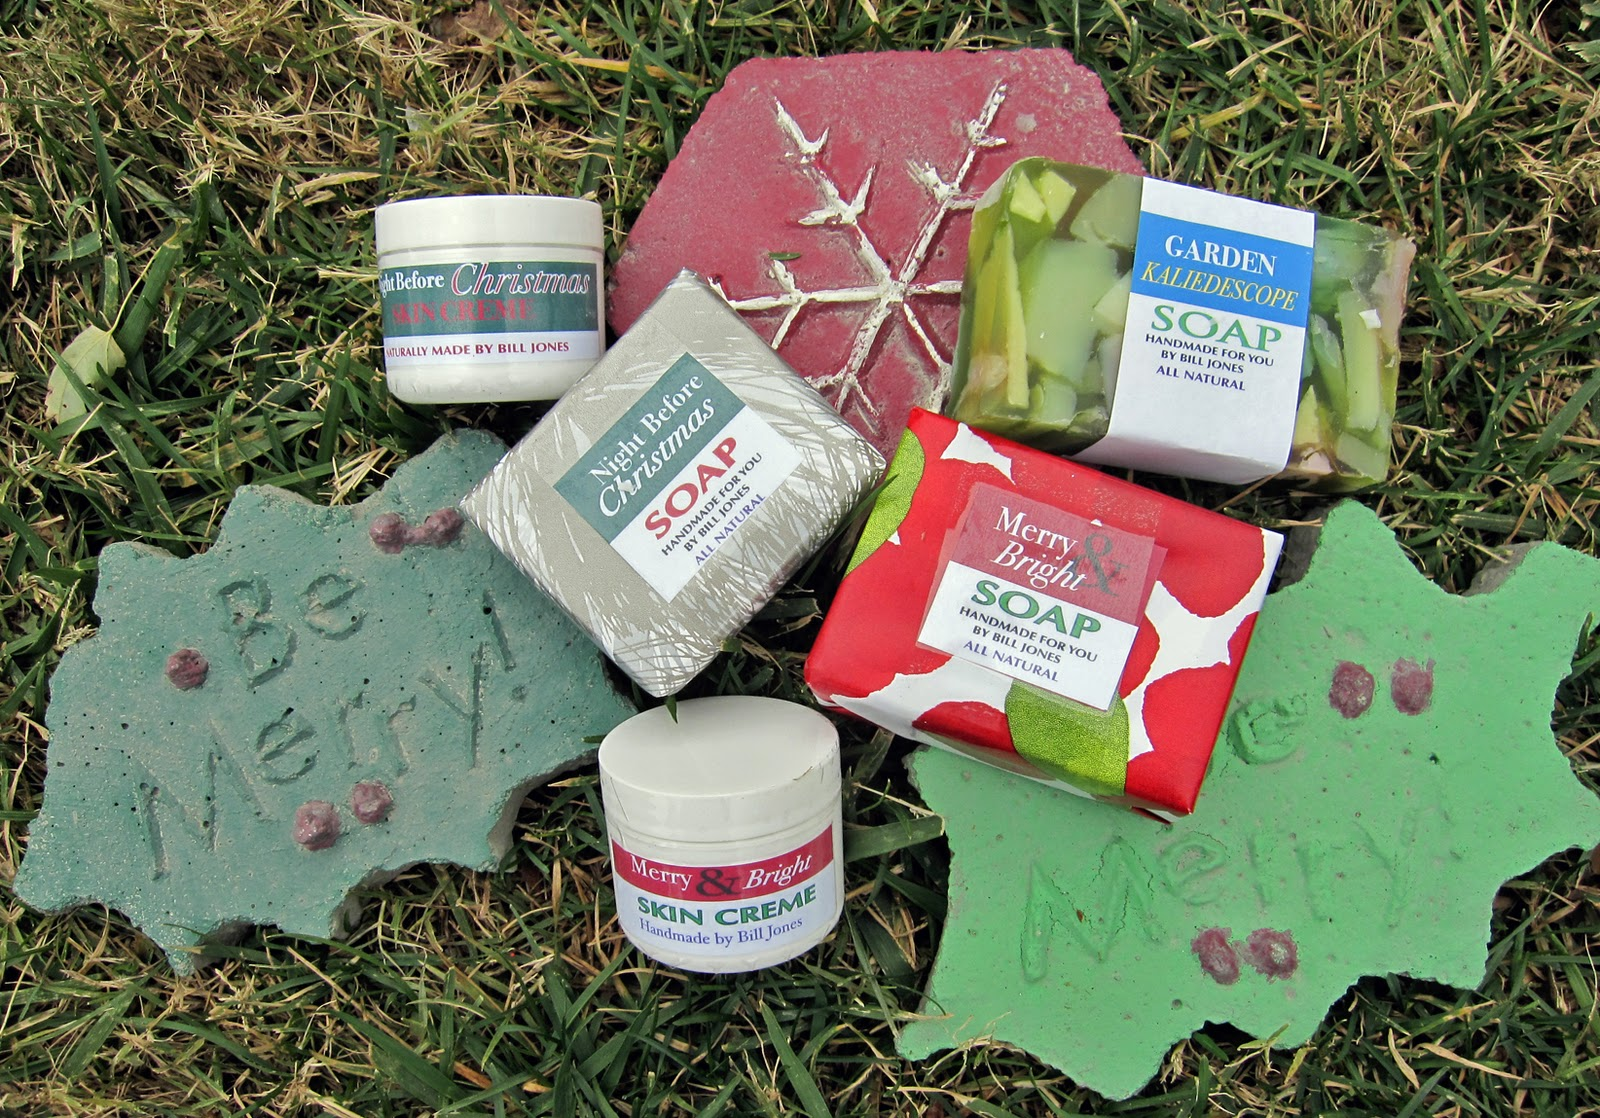 From The Summer S Garden Holiday Soaps Skin Cremes And